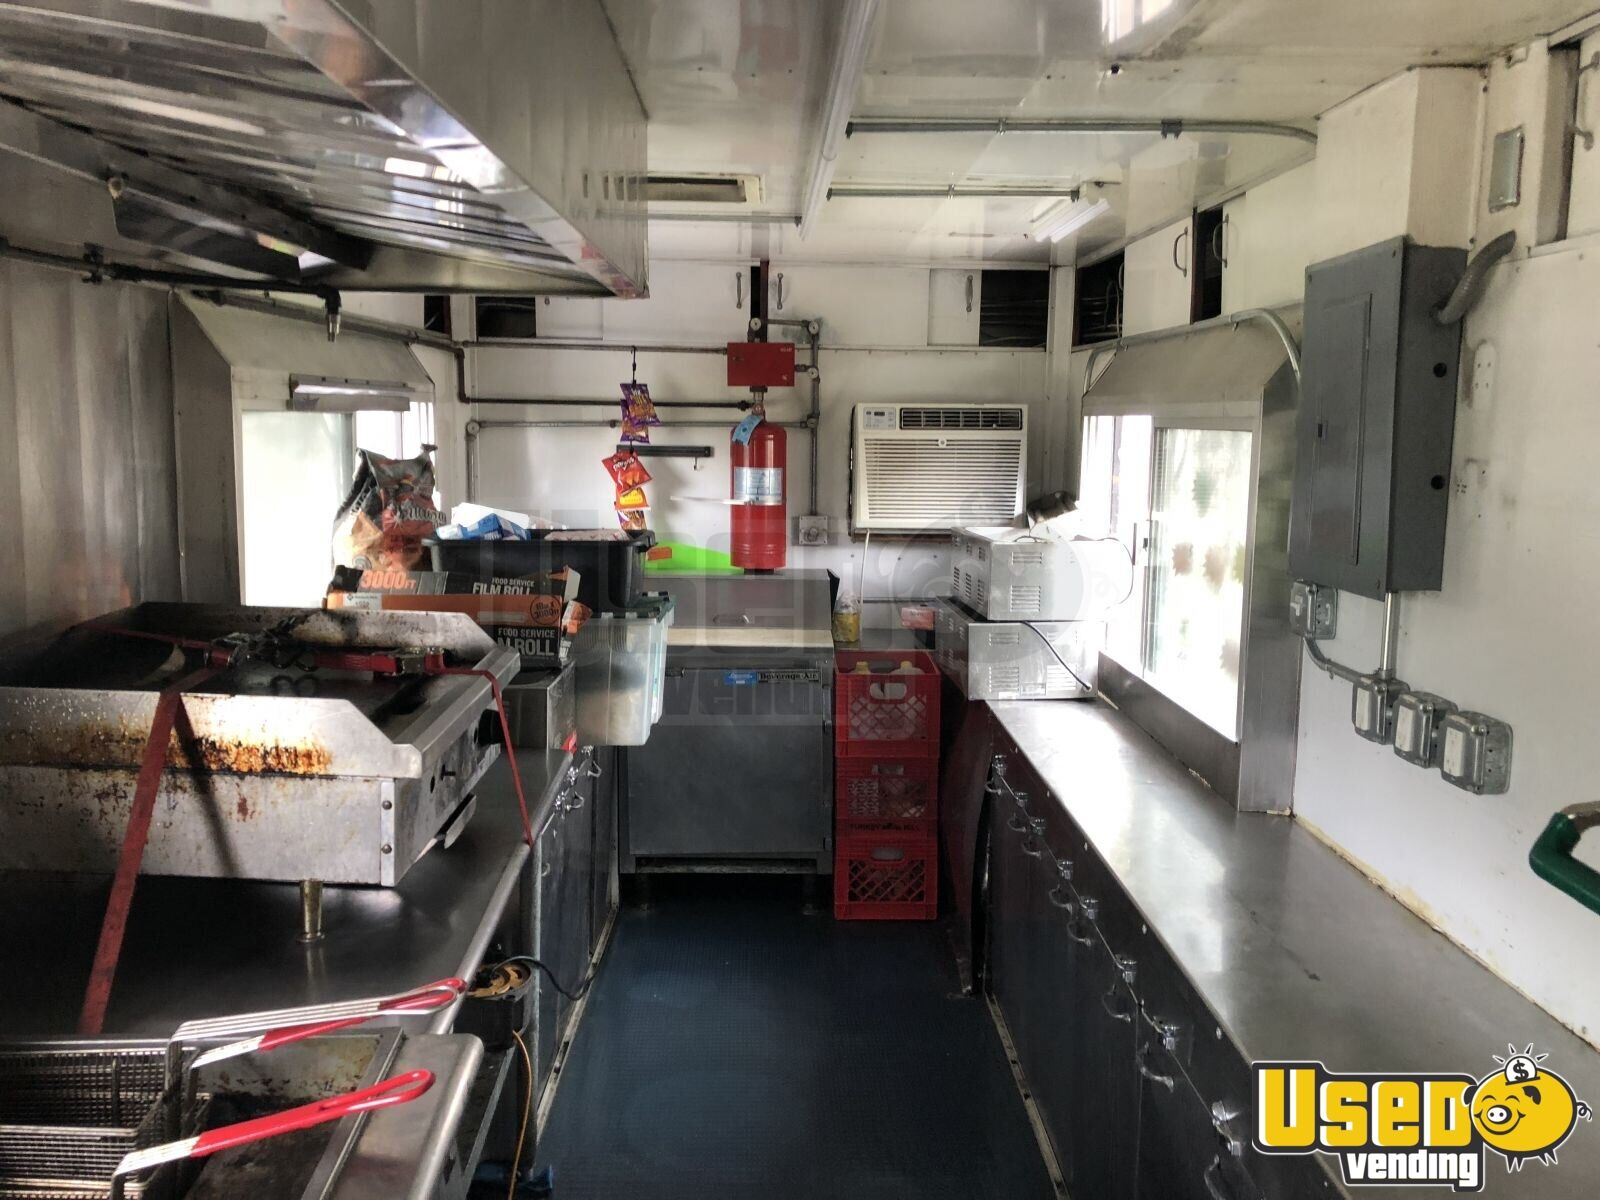 Kitchen Food Trailer Pro Fire Suppression System Pennsylvania for Sale - 10